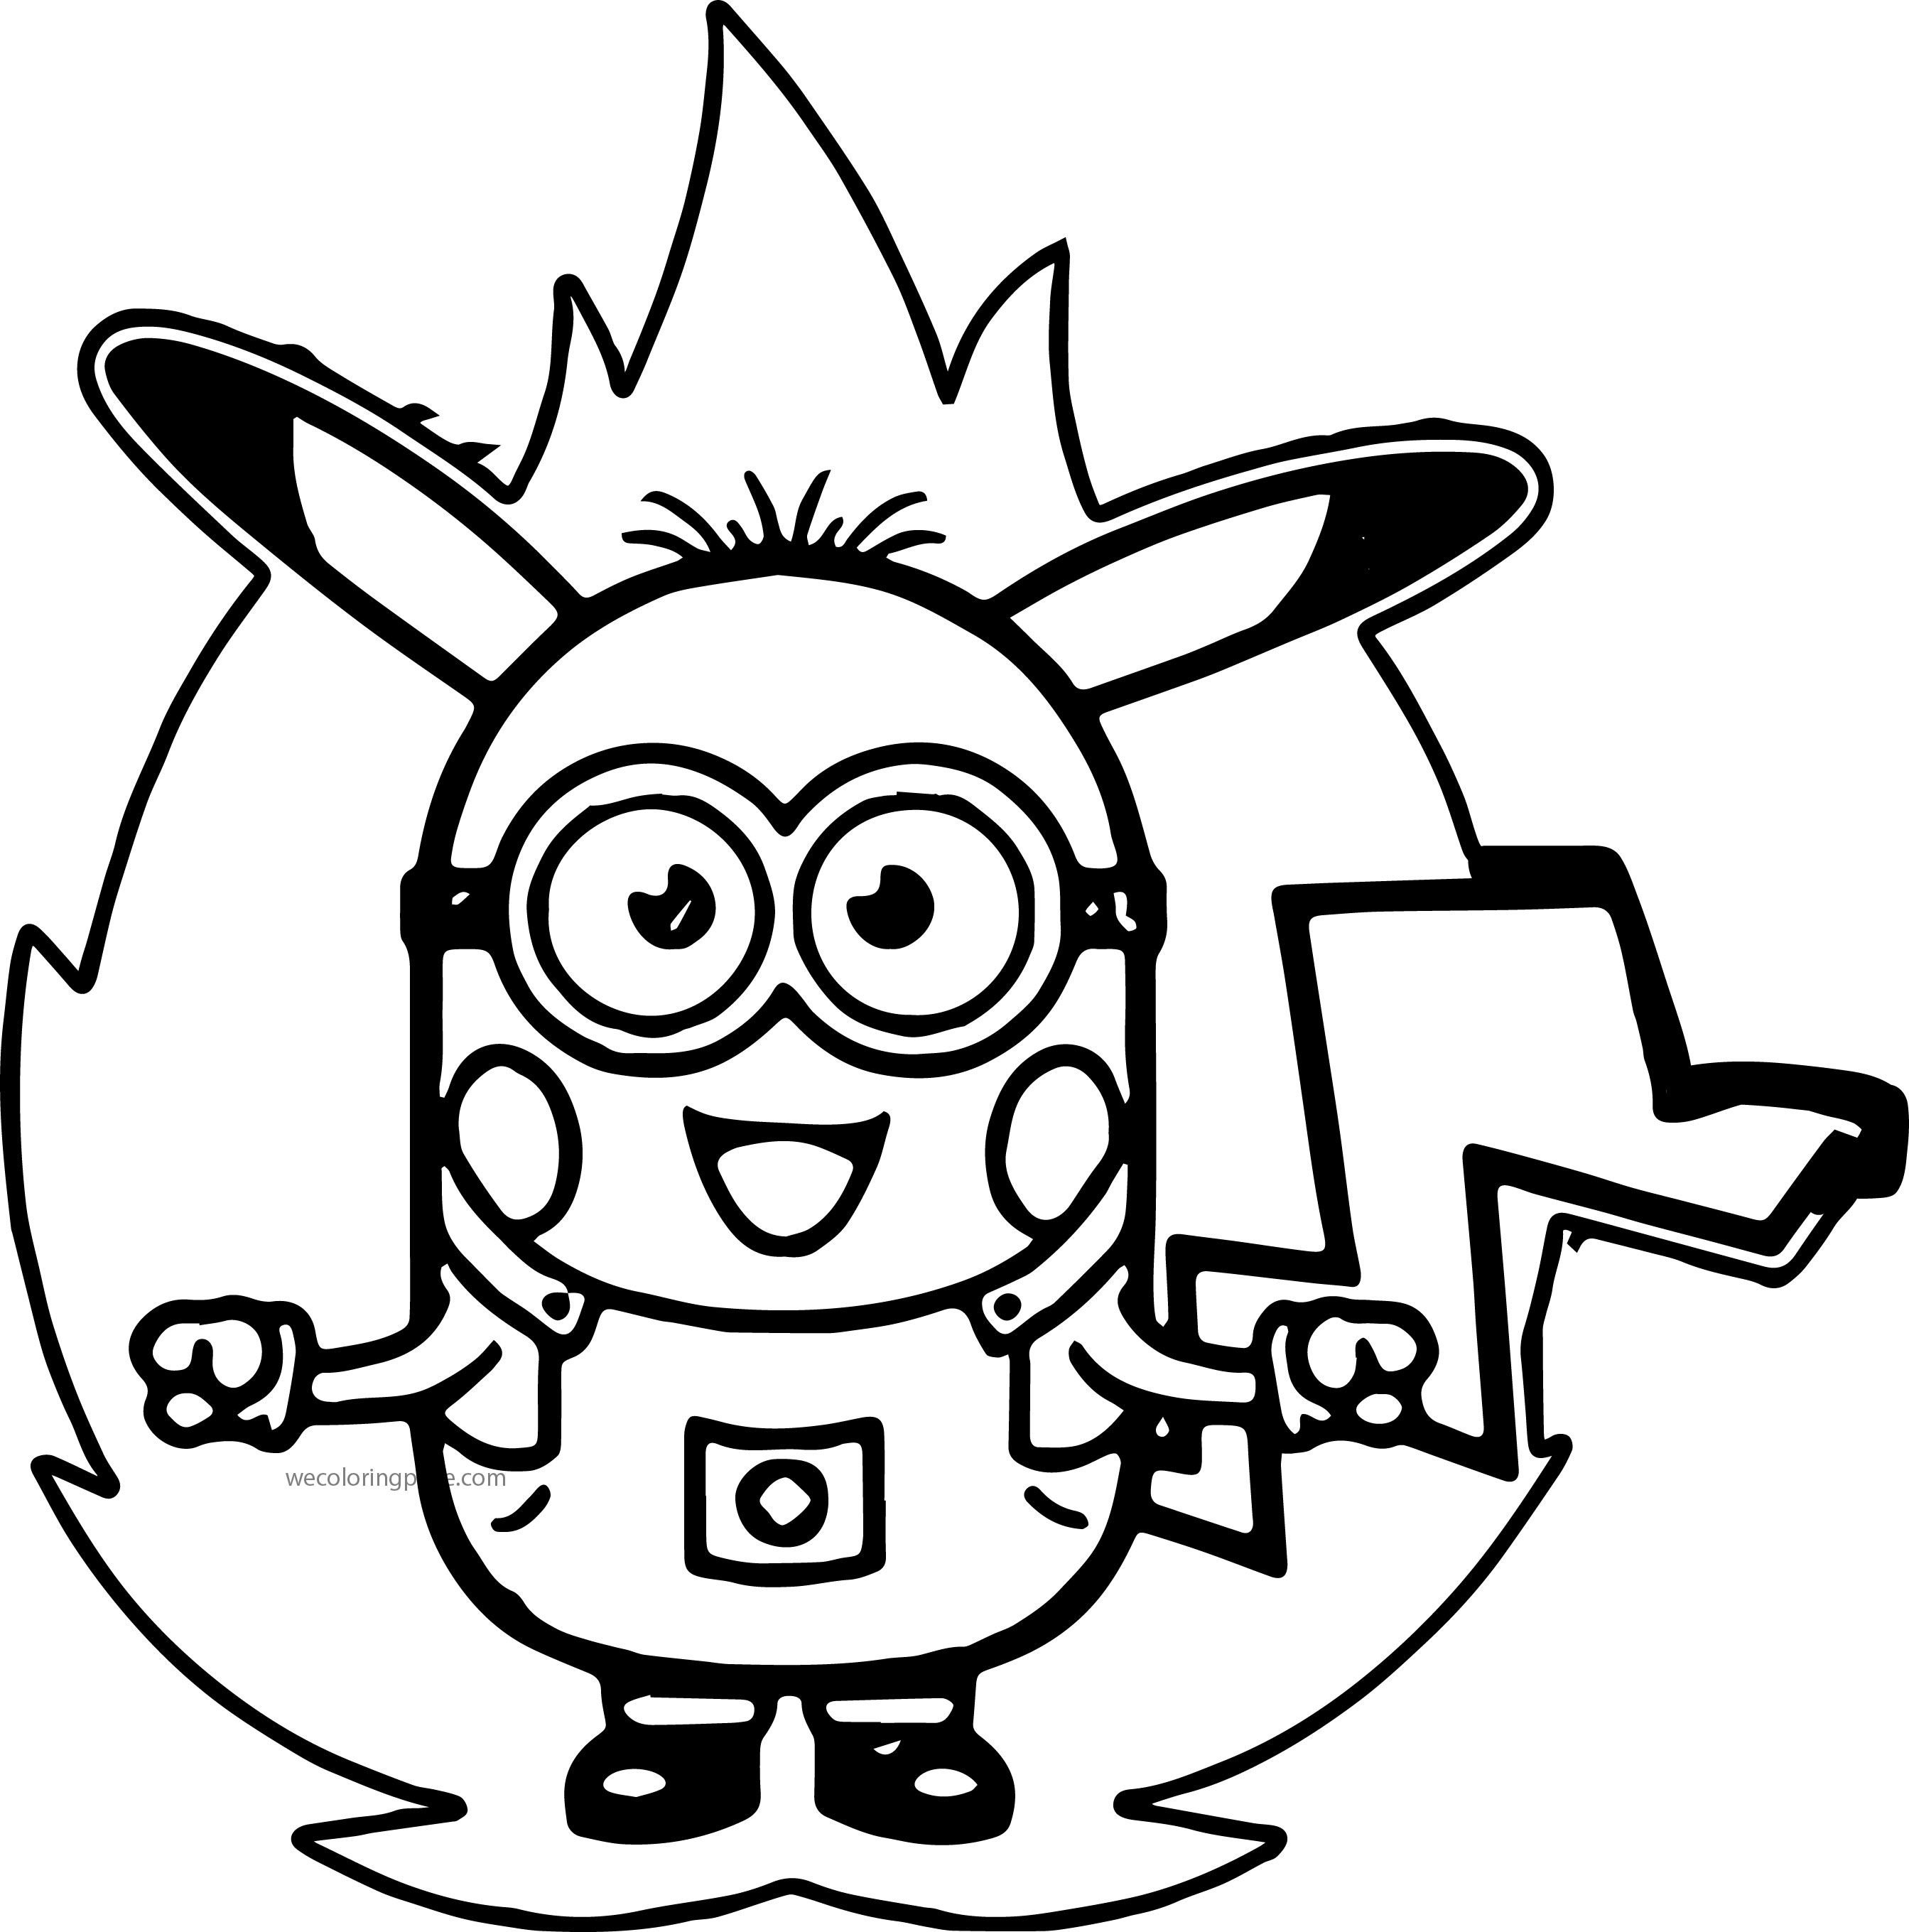 Minion Coloring Pages | Free download best Minion Coloring Pages on ...